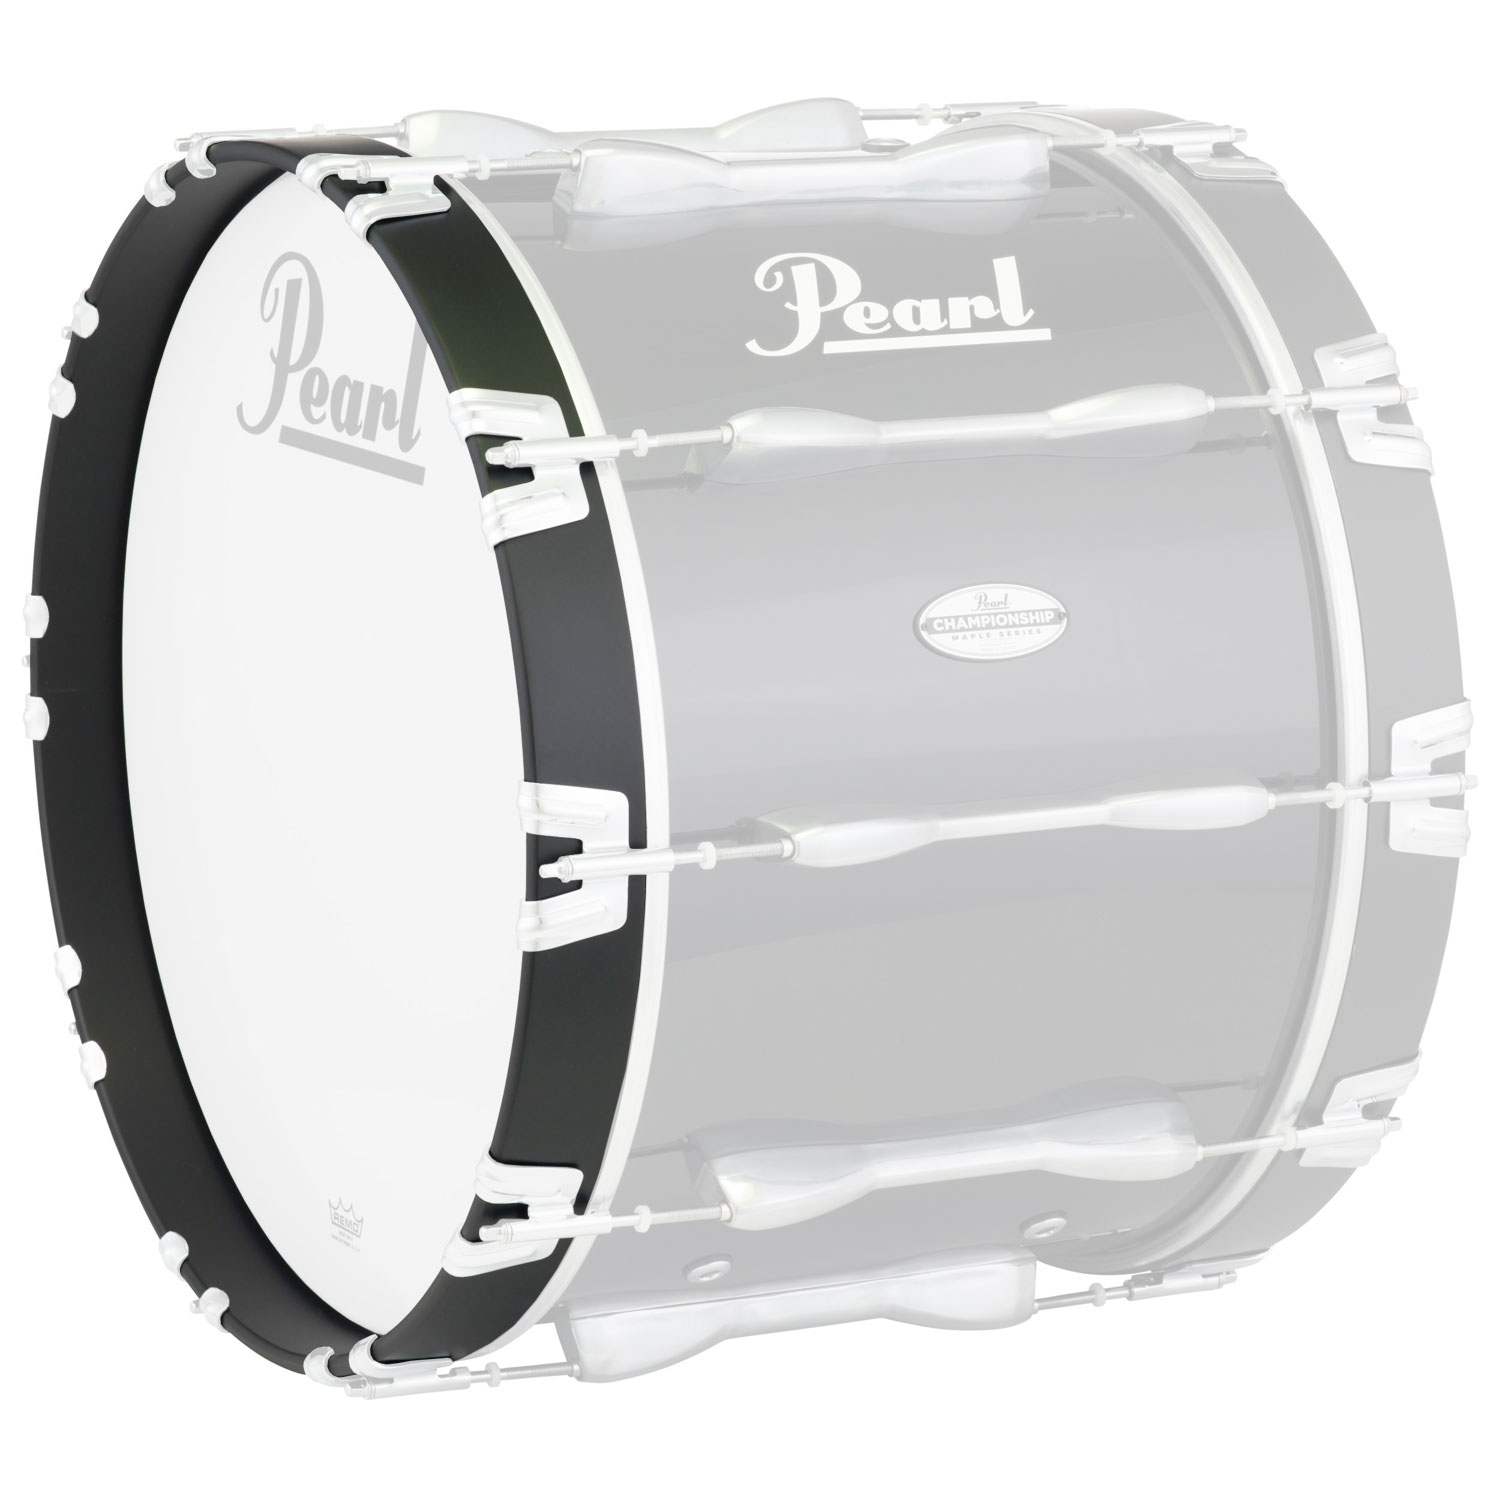 "Pearl 30"" Championship Bass Hoop, Gloss Black, 2"" Wide"